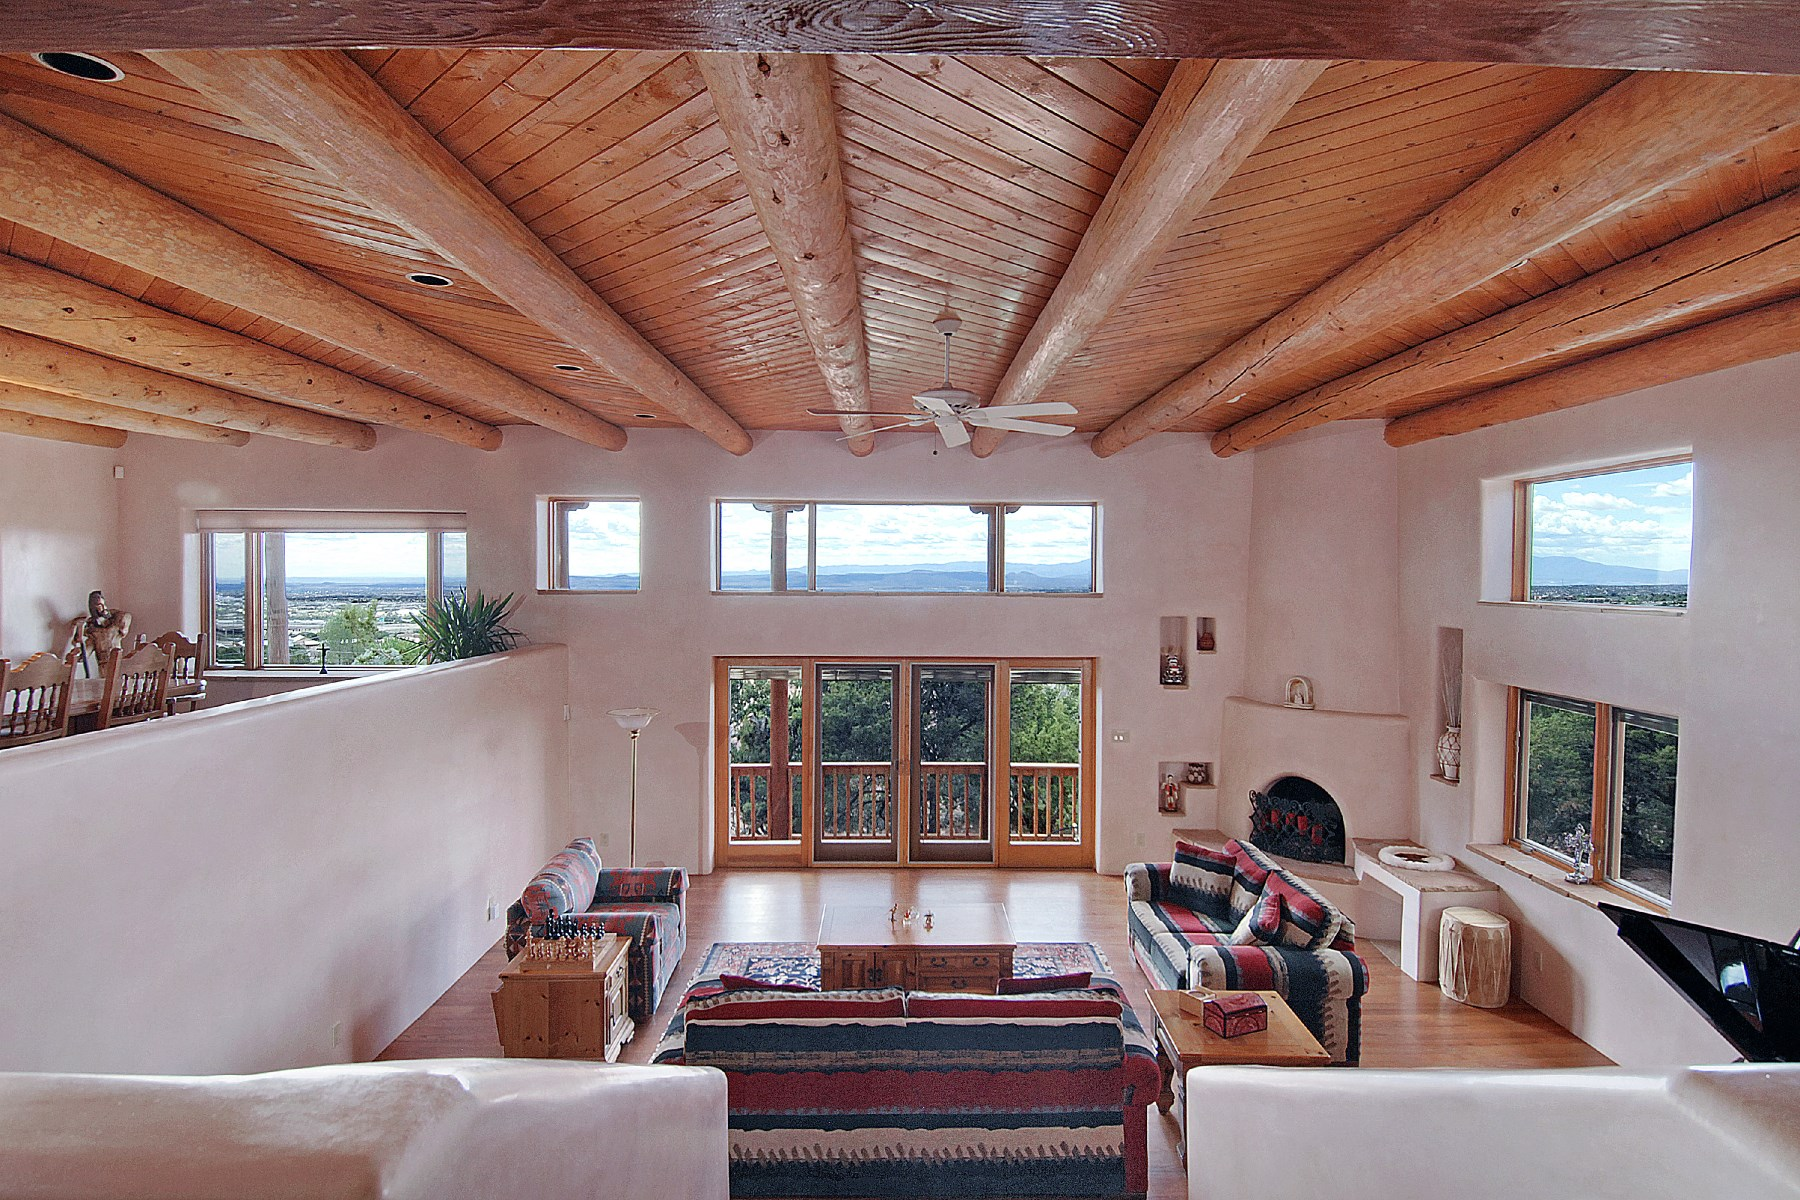 Single Family Home for Sale at 10 Camino Monte Feliz Santa Fe, New Mexico, 87505 United States